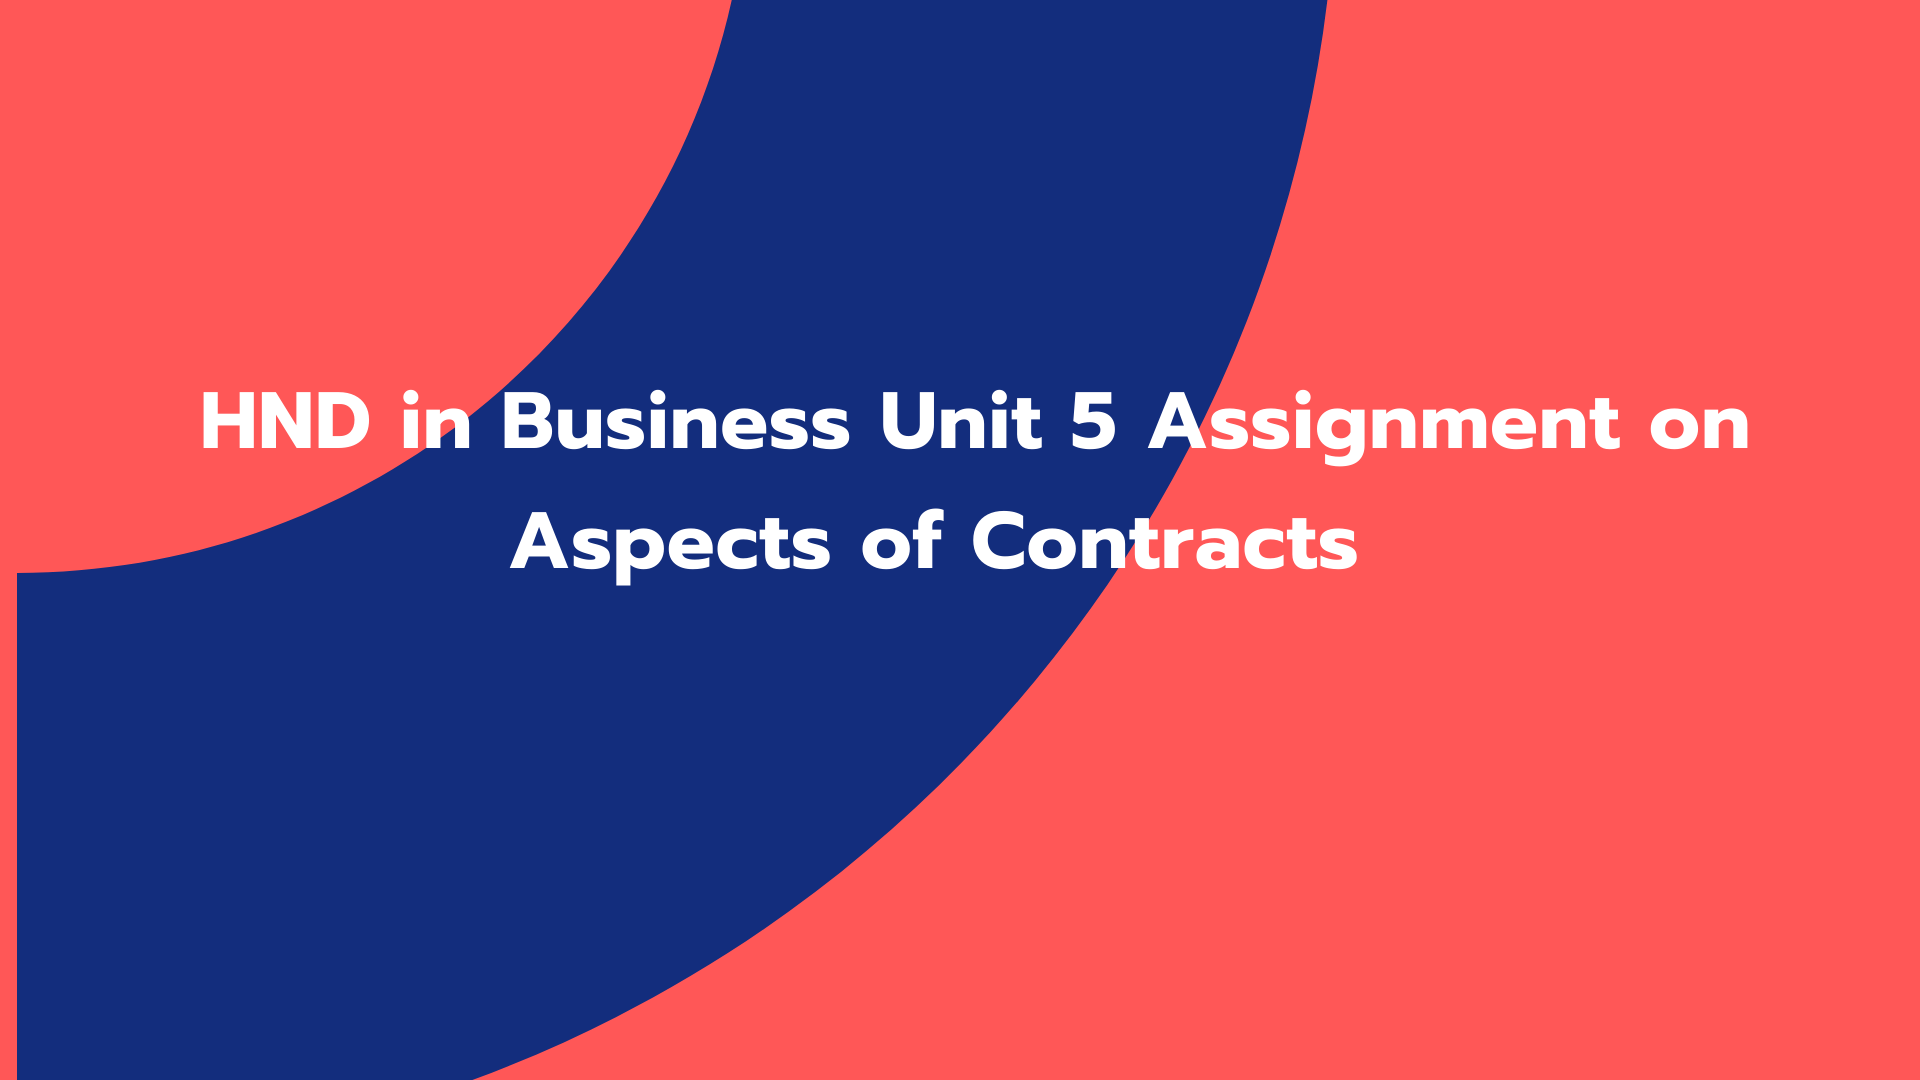 HND in Business Unit 5 Assignment on Aspects of Contracts